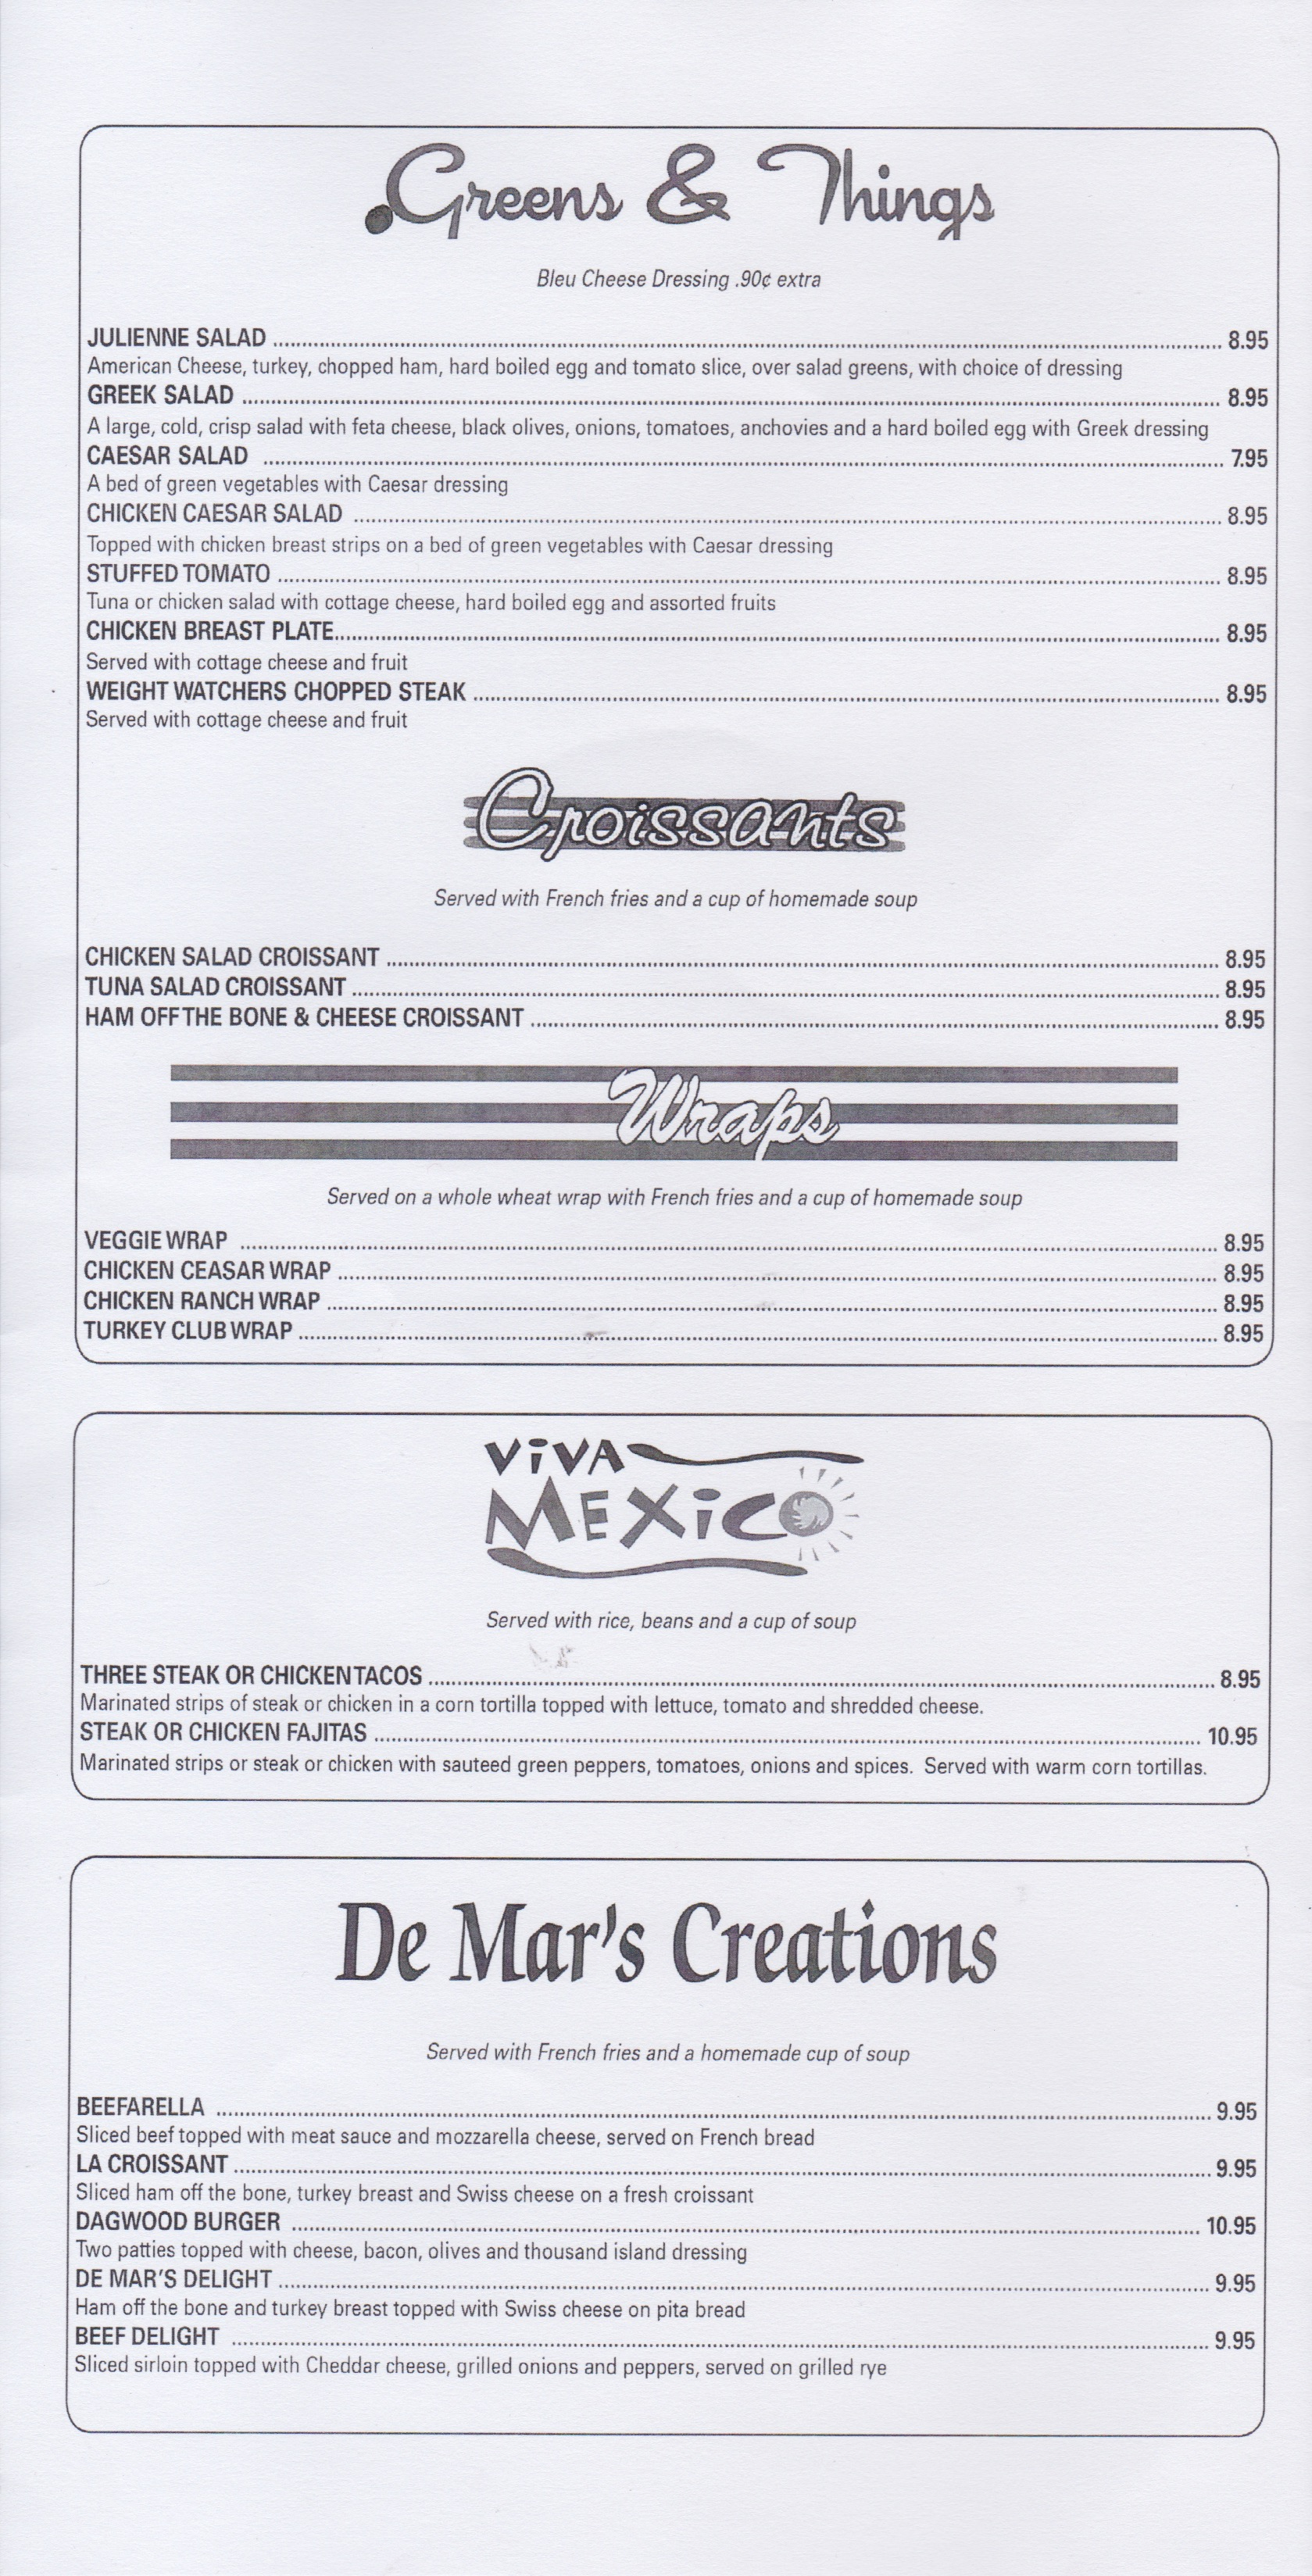 Demars Menu page 1